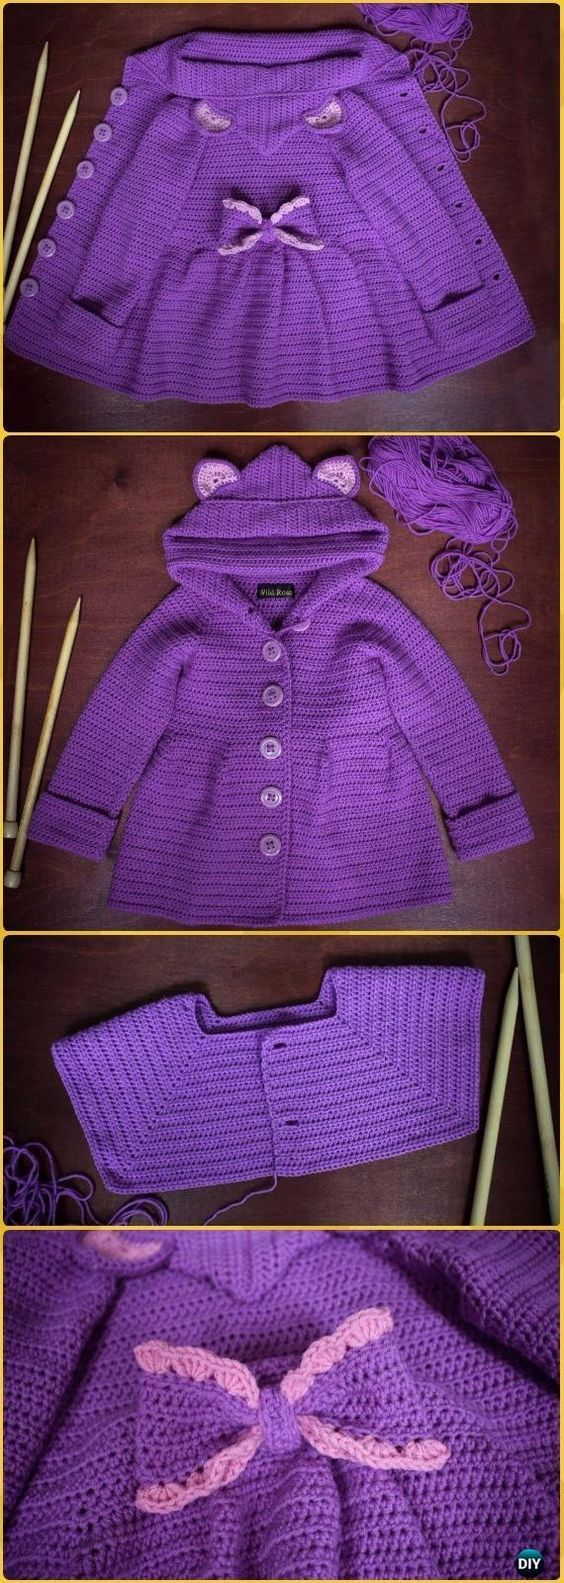 Crochet Baby Ruffled Cardigan Coat Free Pattern Video - Crochet Kid's Sweater Coat Free Patterns